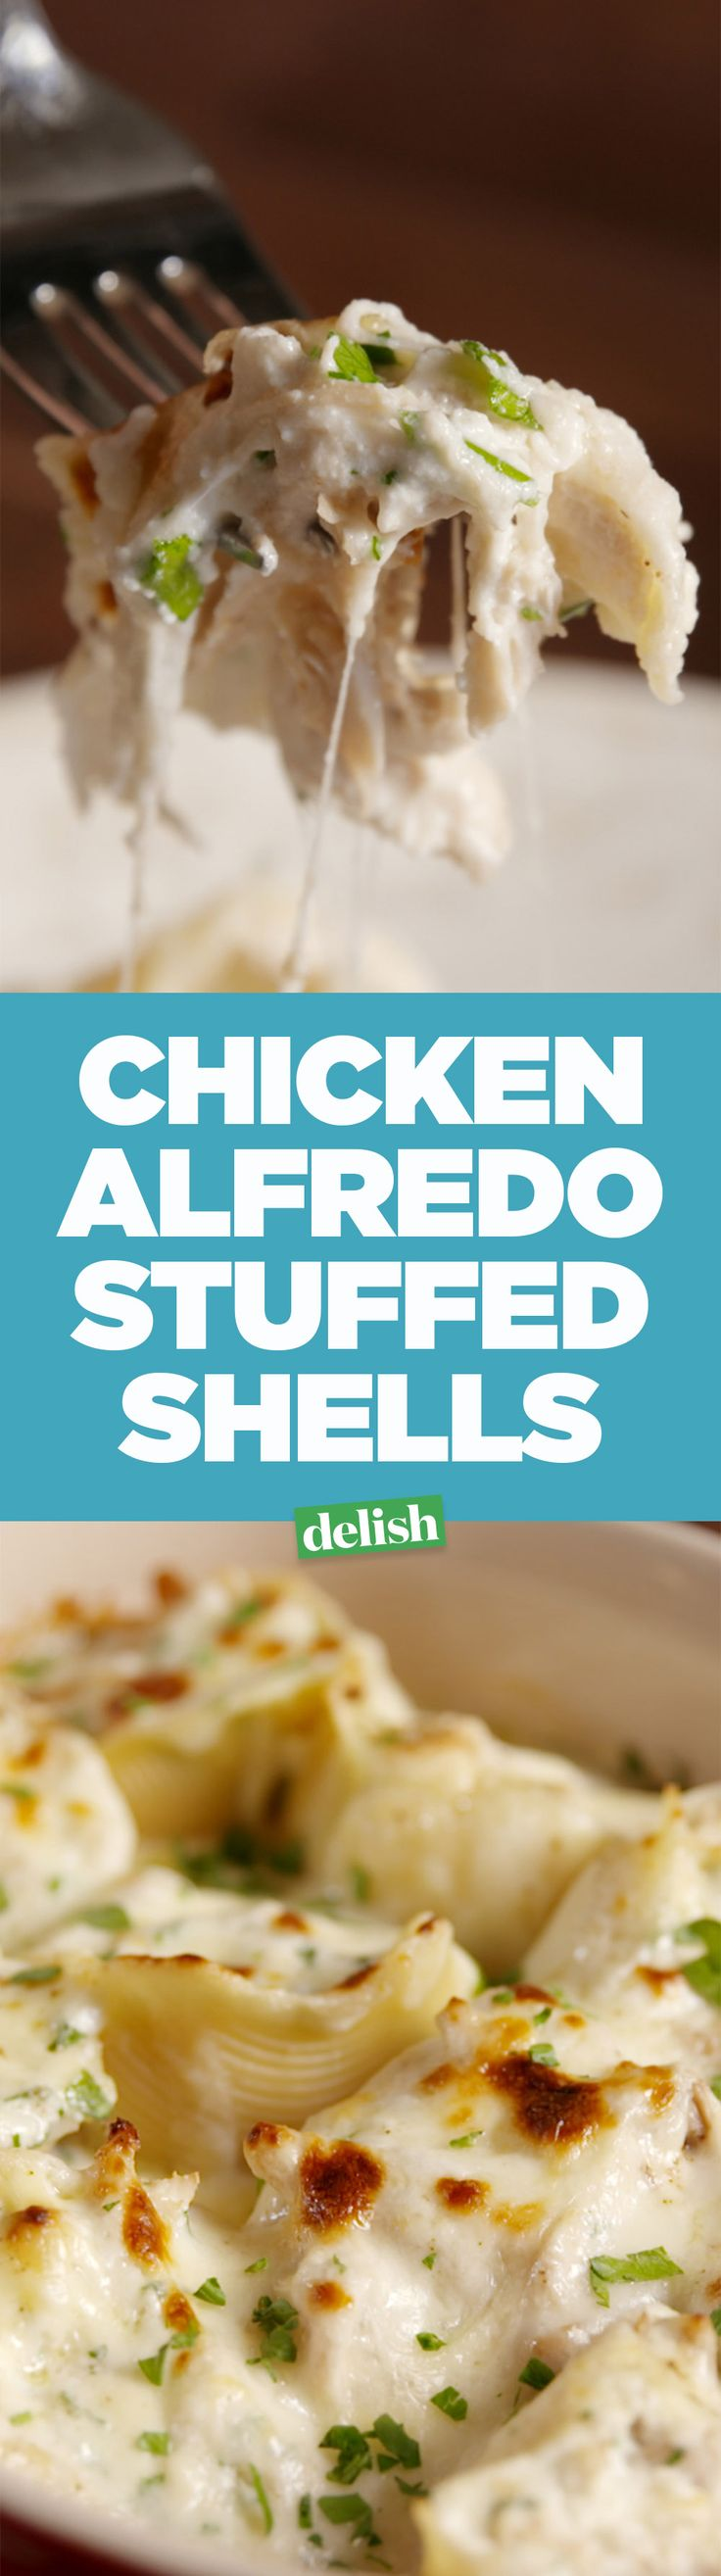 Chicken alfredo stuffed shells are easily the best way to eat chicken alfredo. Get the recipe on Delish.com.